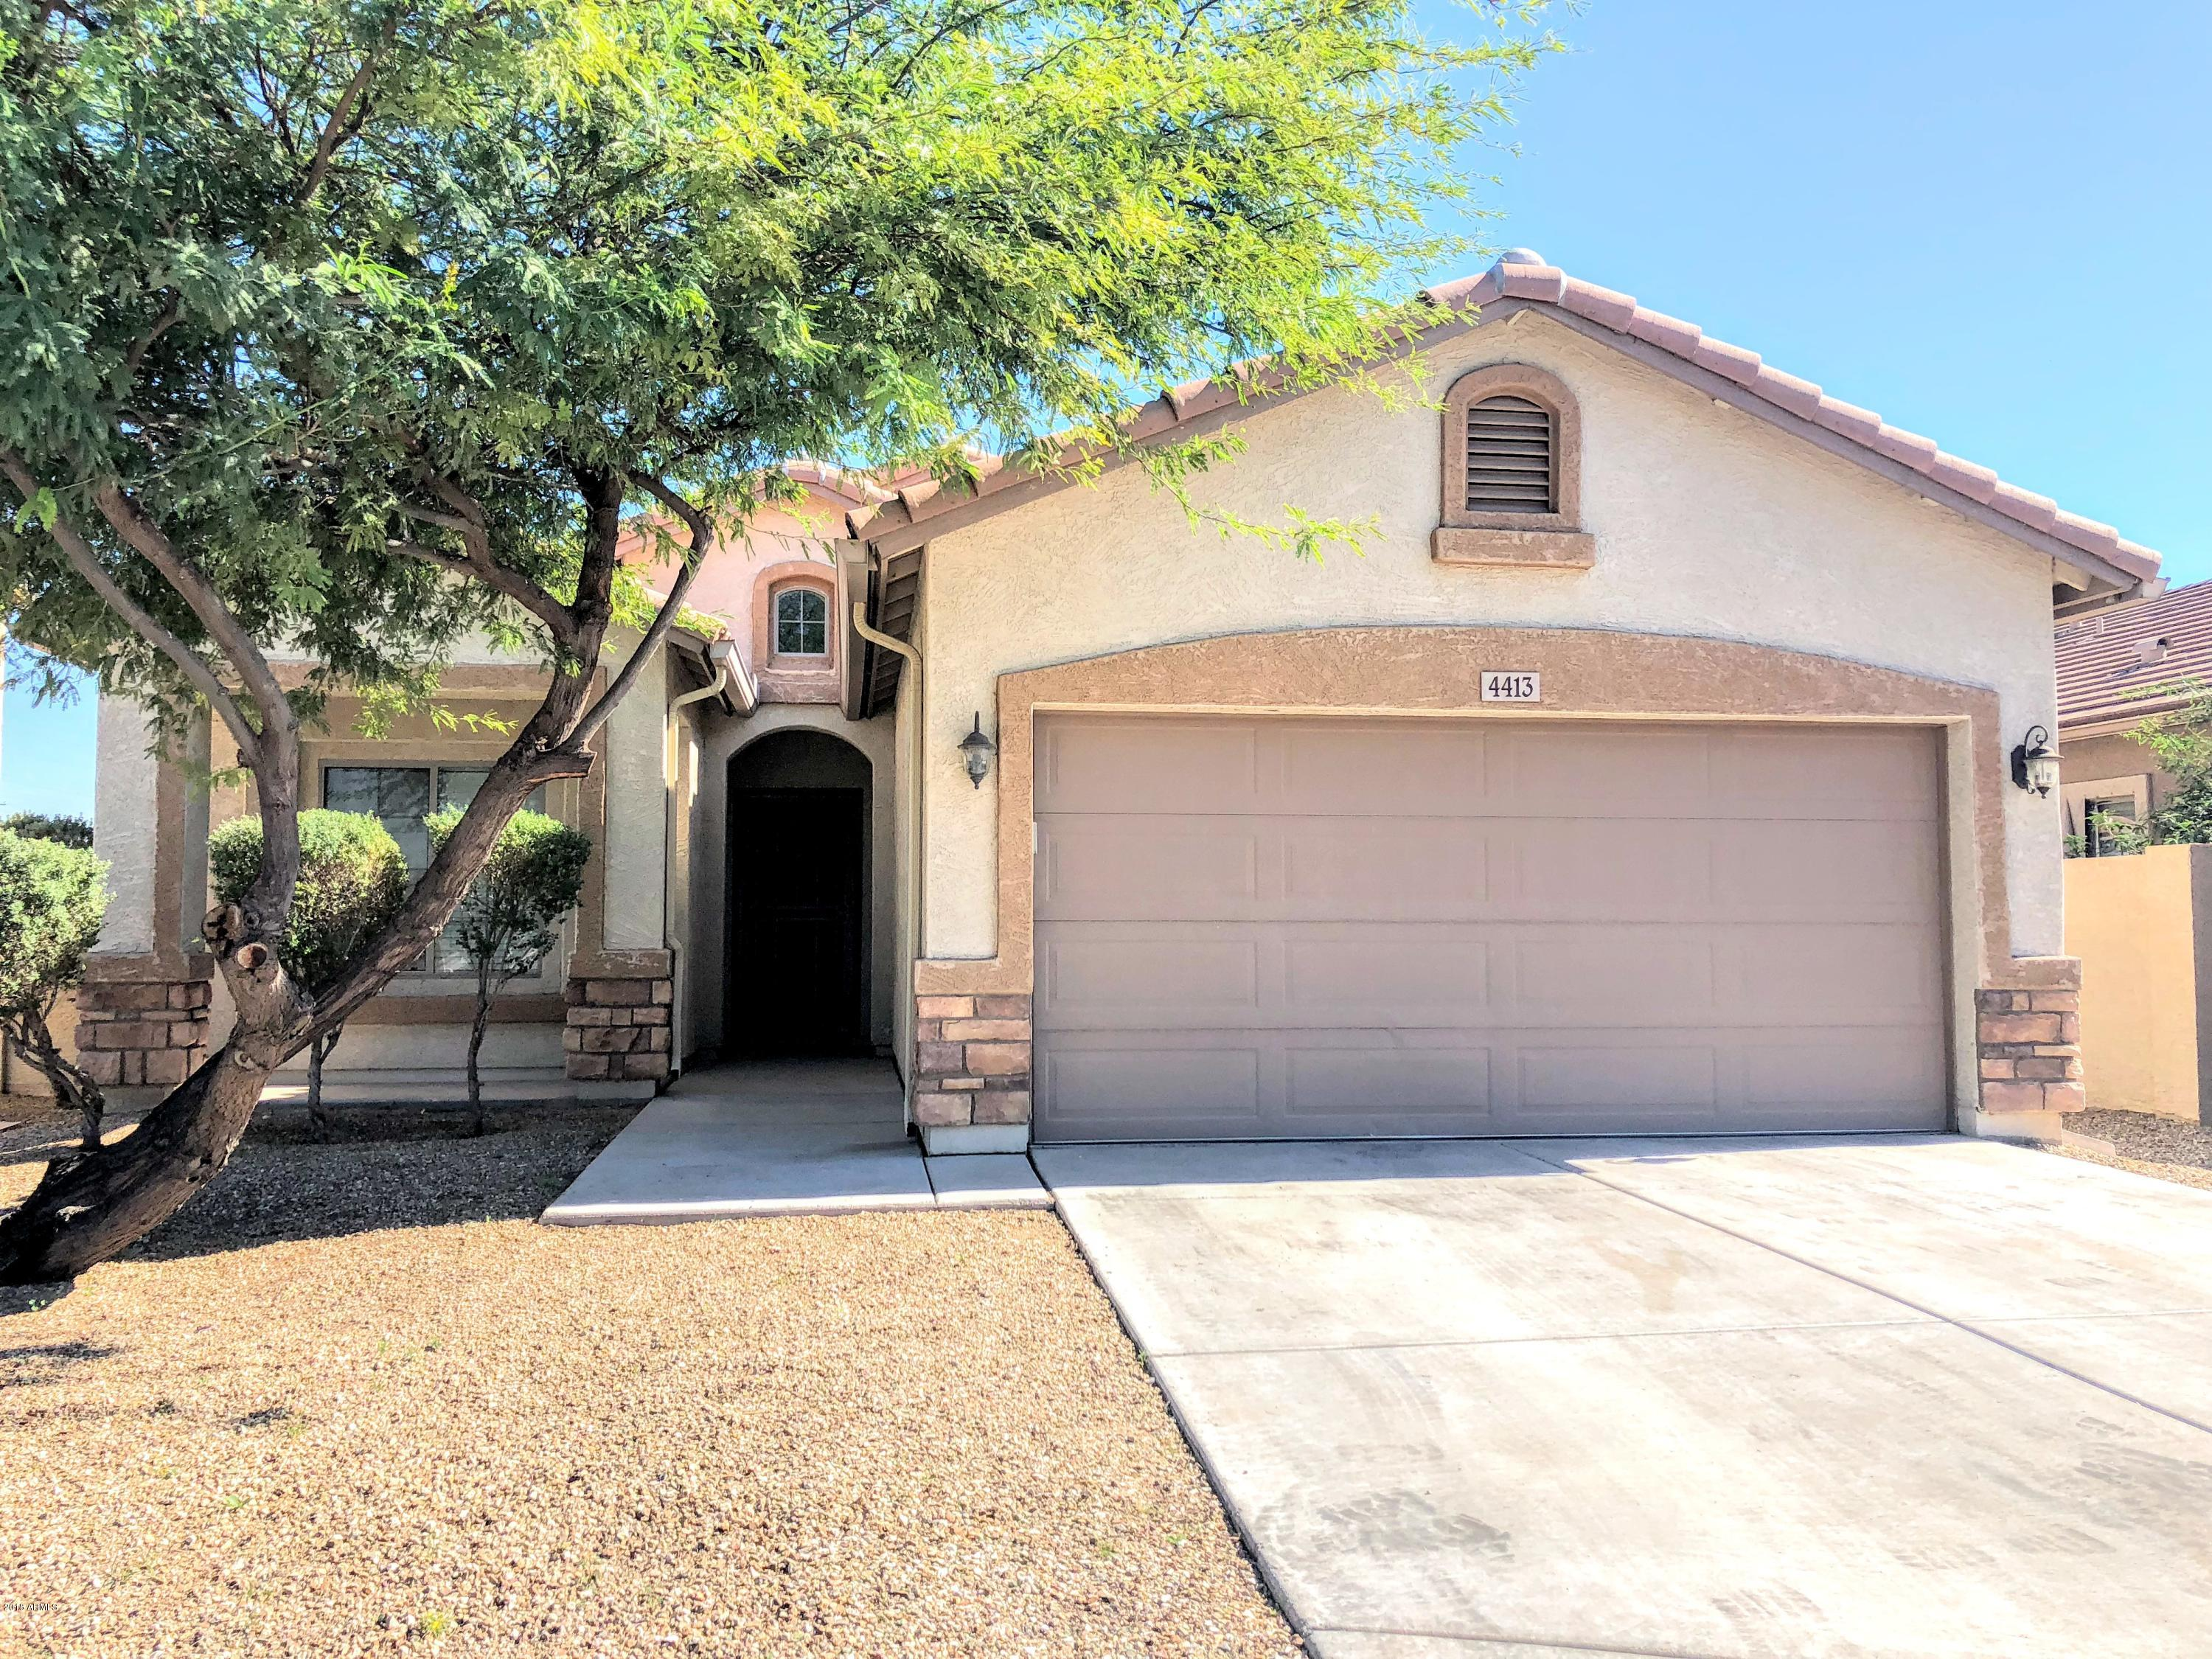 Photo of 4413 S 100th Lane, Tolleson, AZ 85353